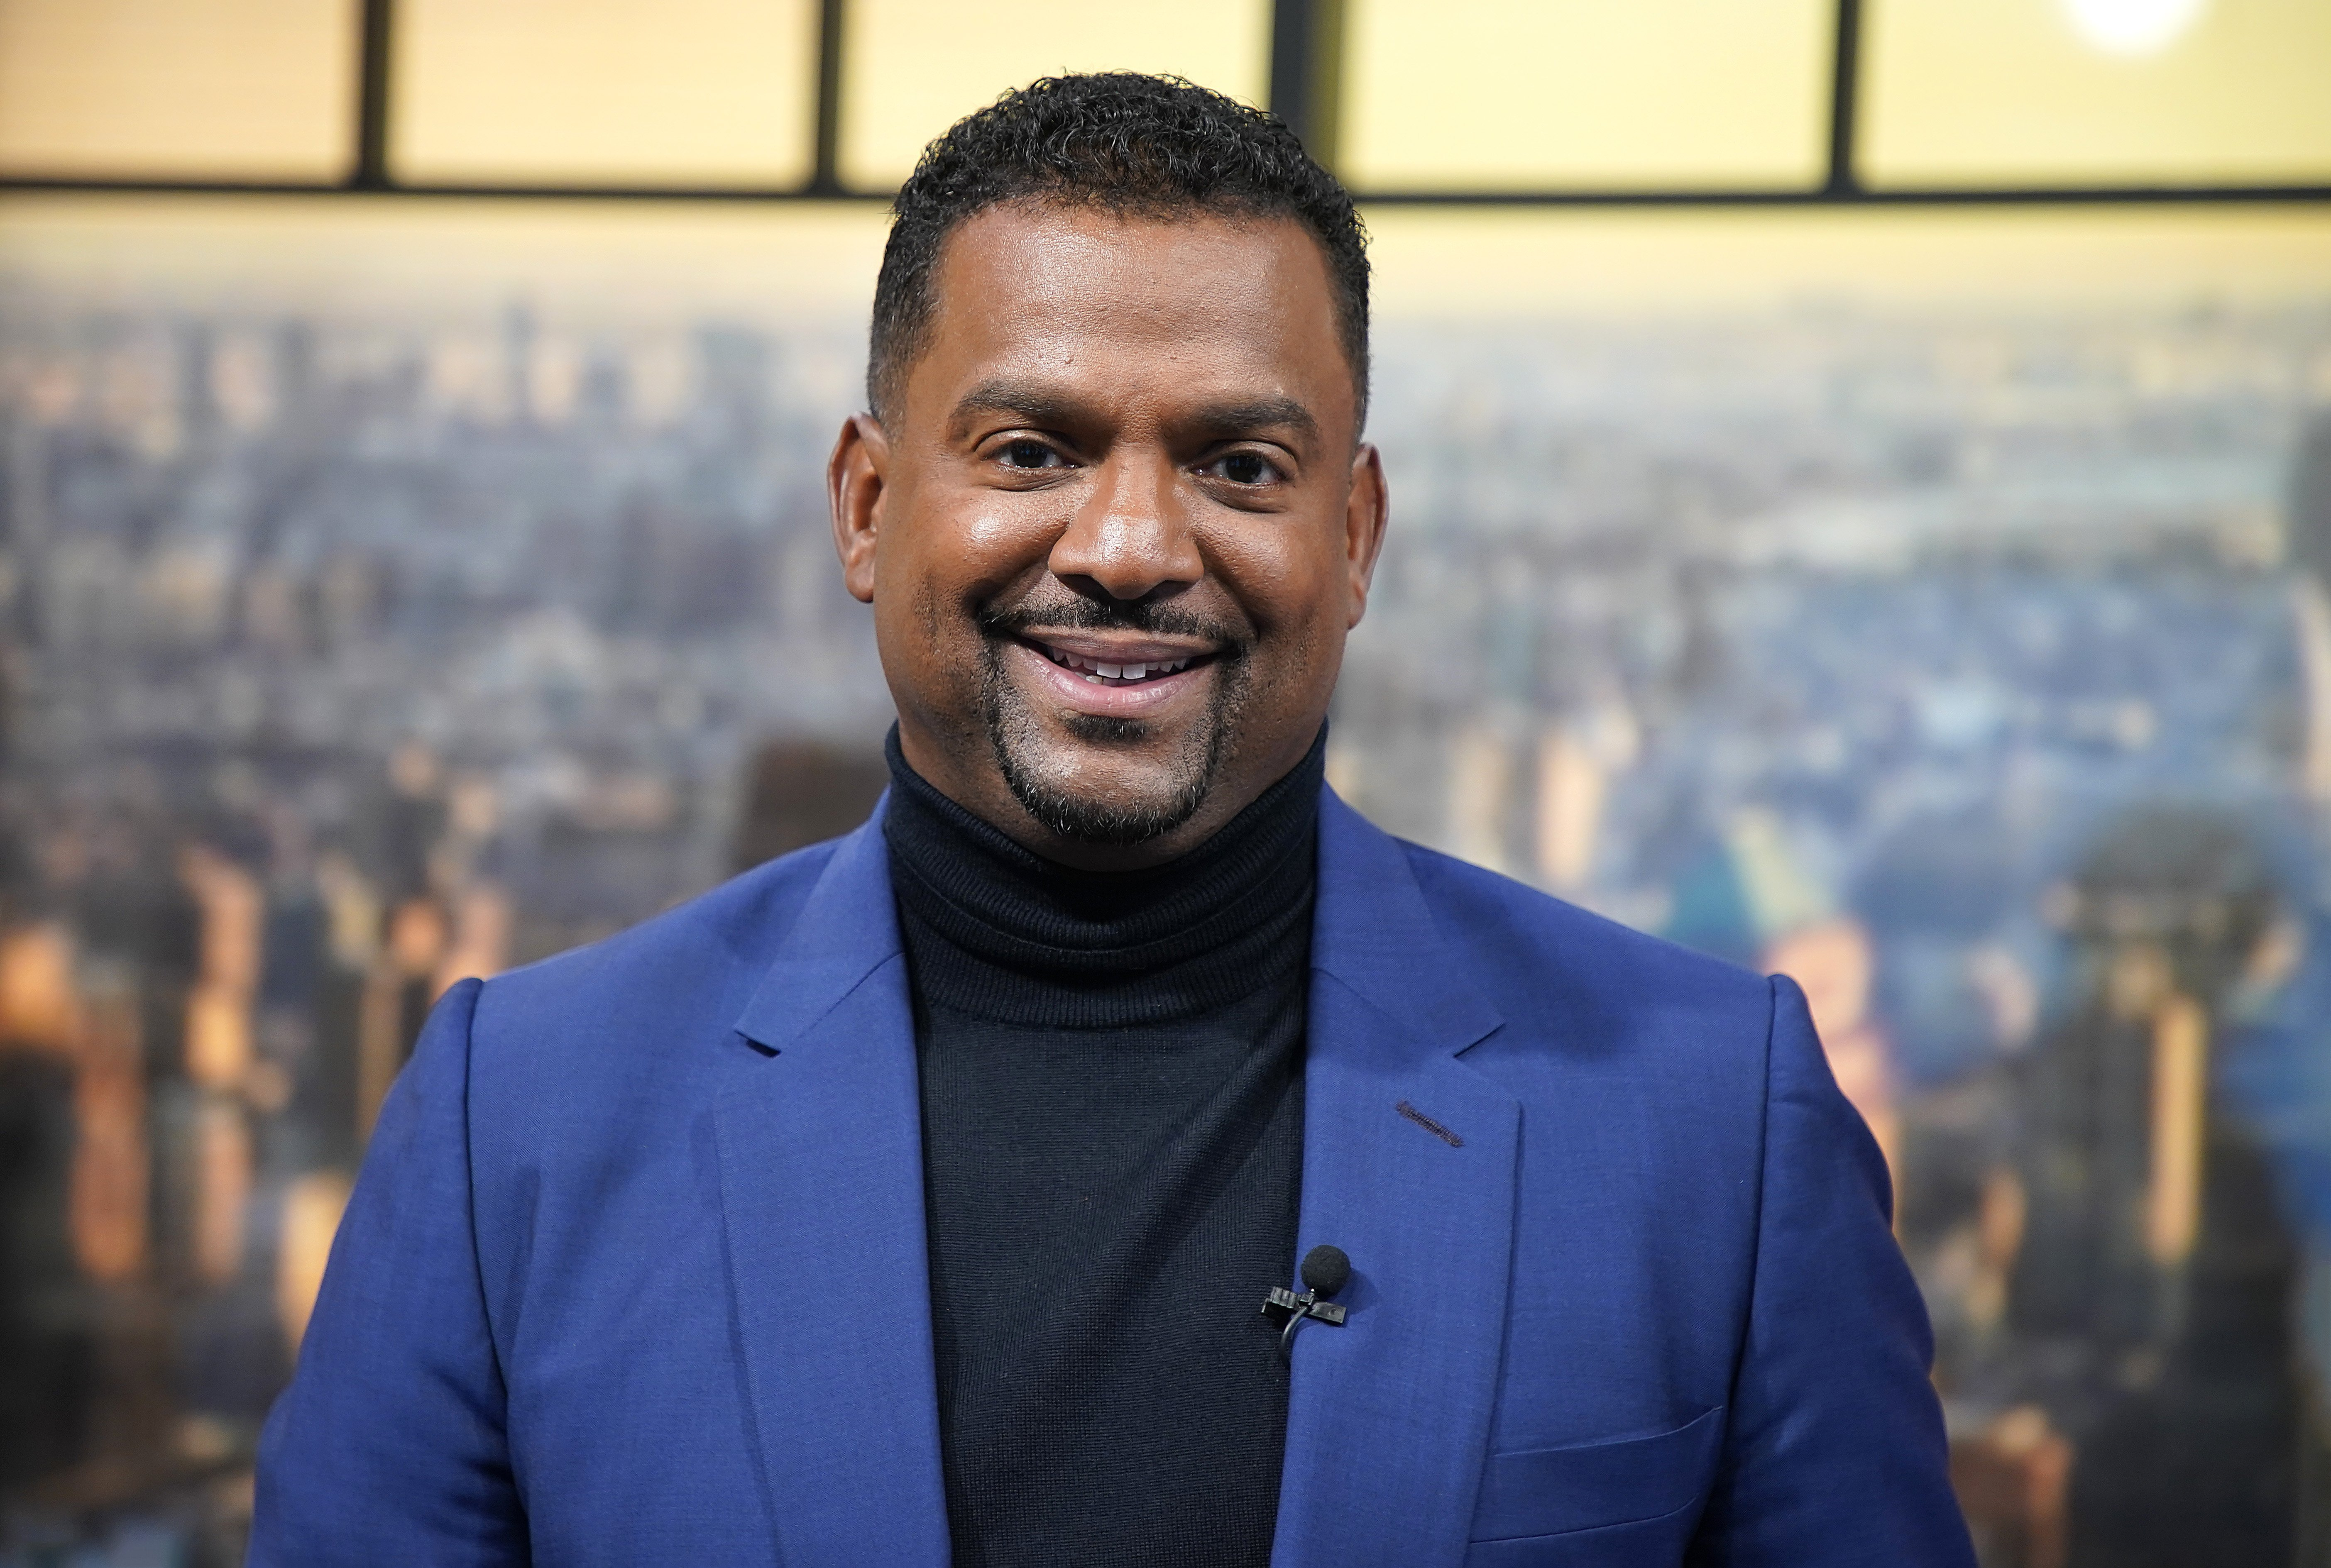 Alfonso Ribeiro at the People Now Studios on November 14, 2019 in New York City, United States. Source: Getty Images